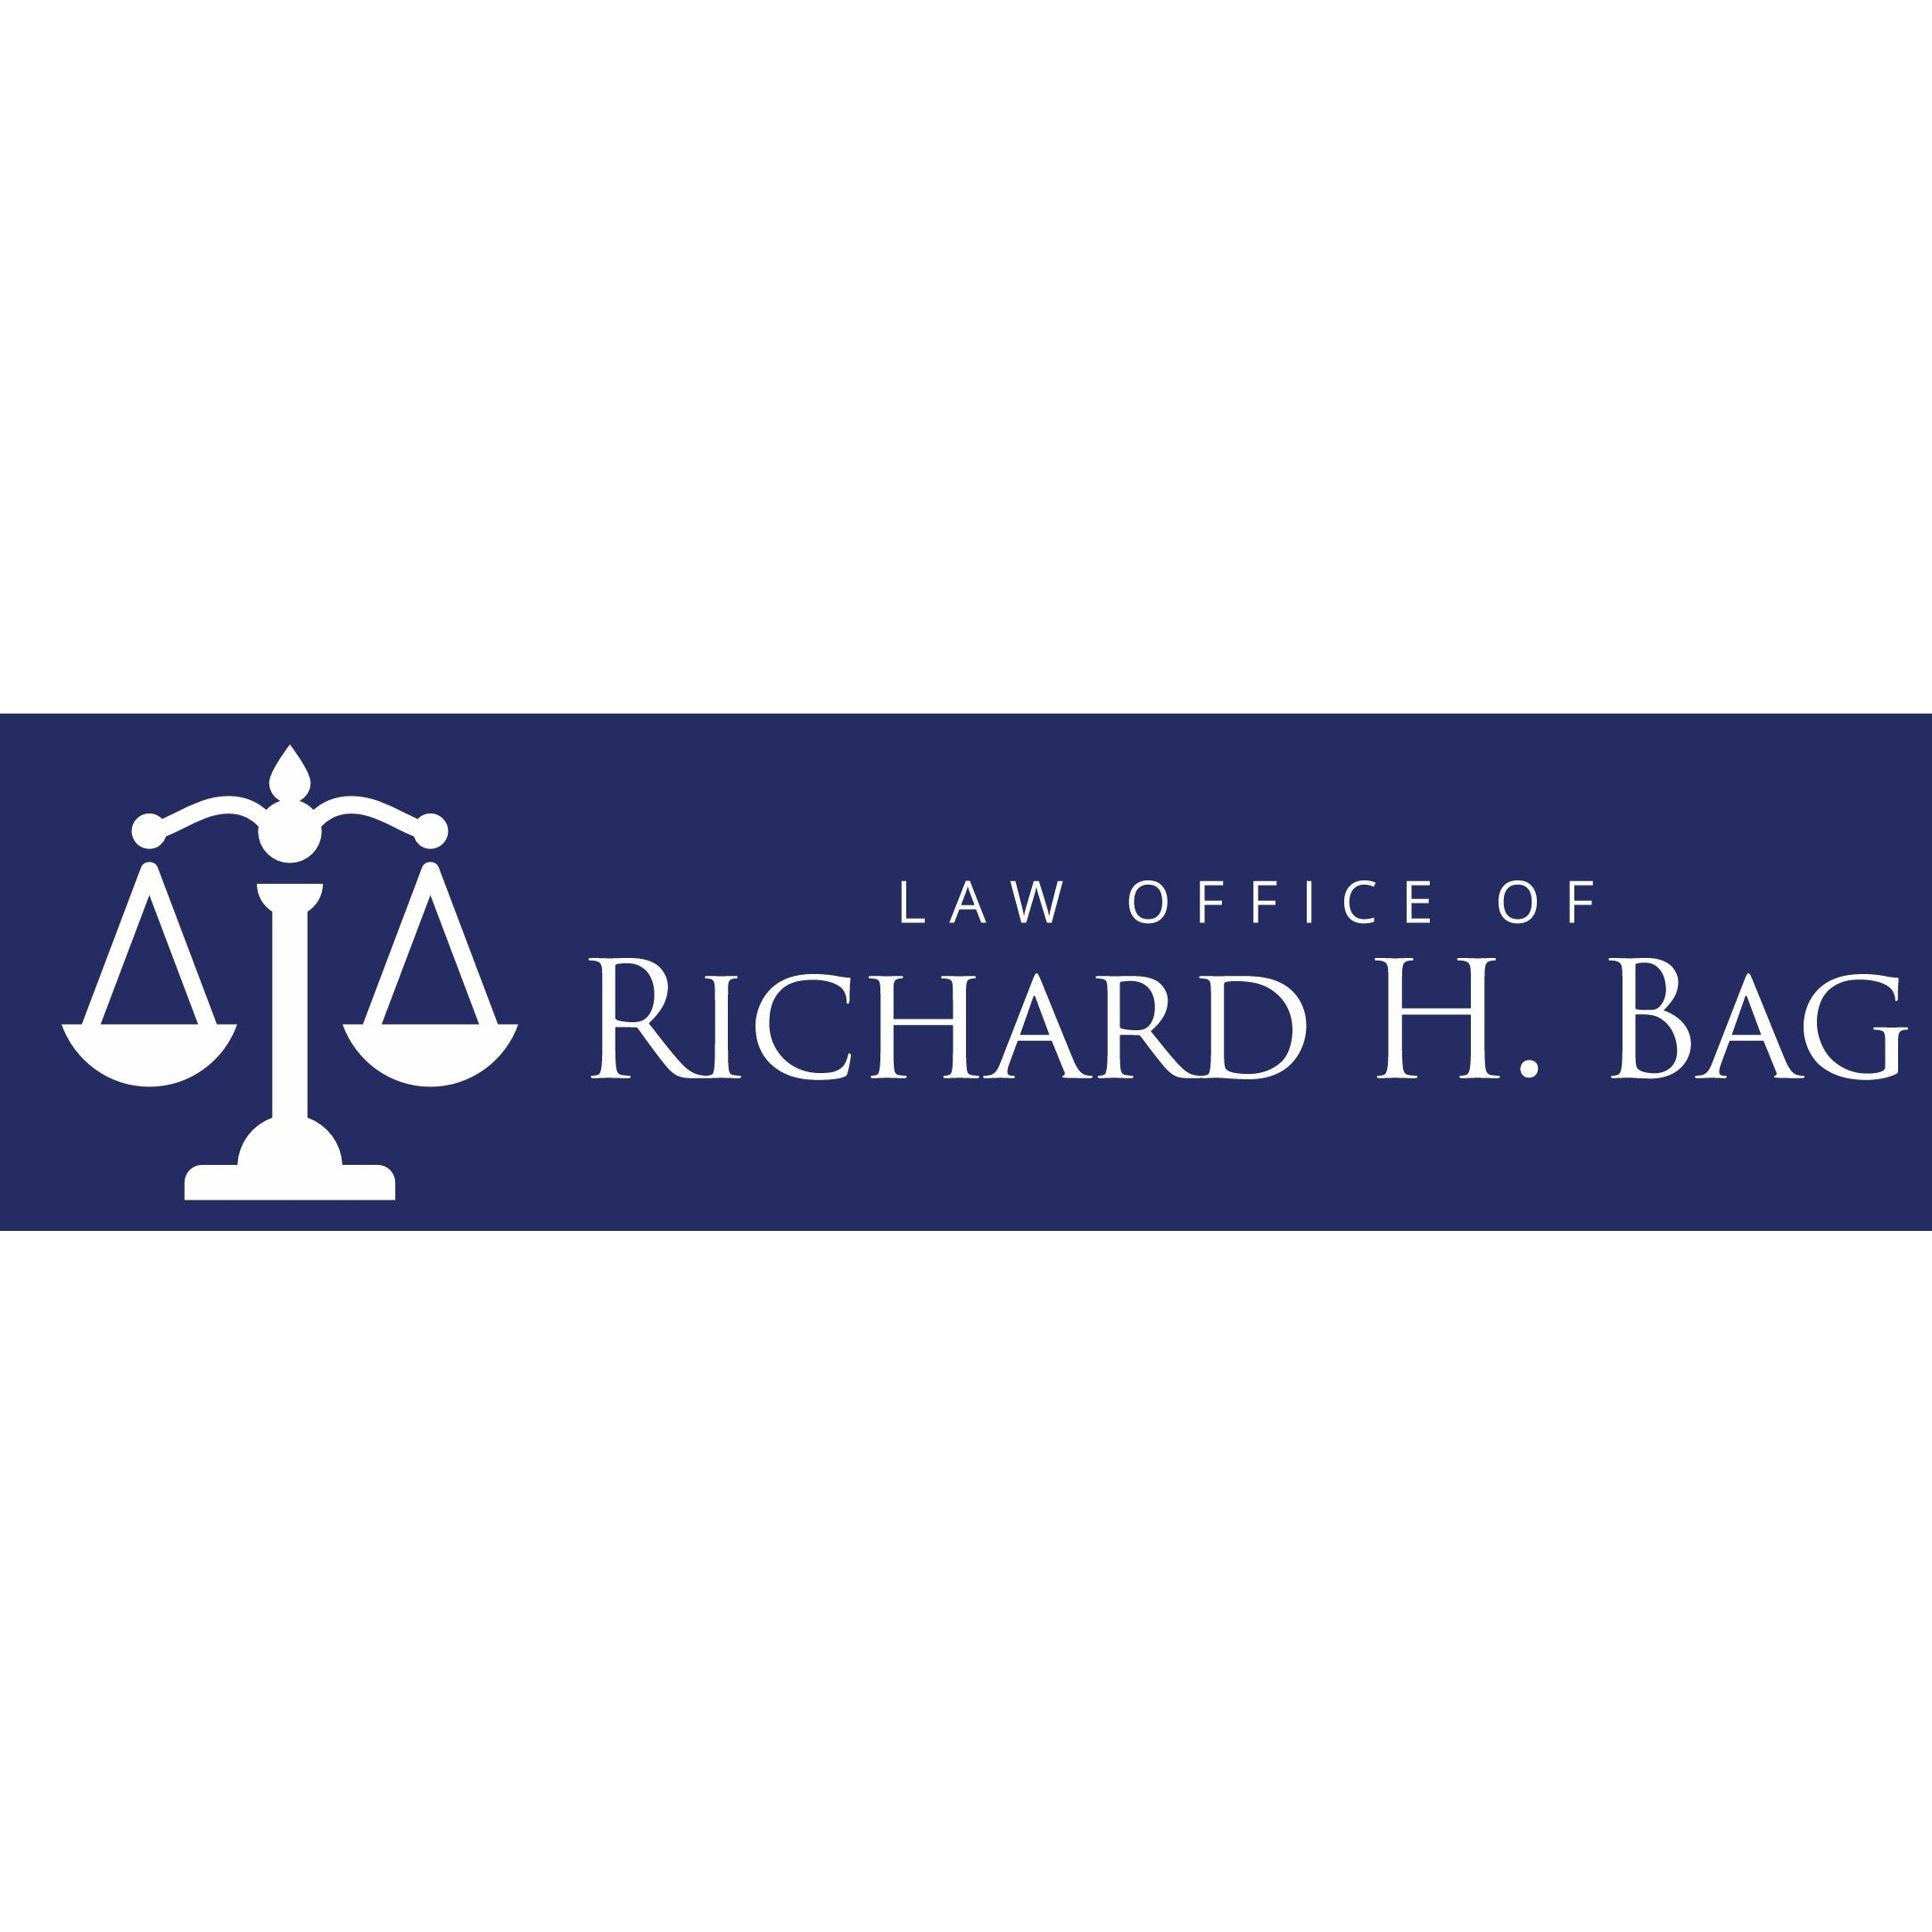 Law Office of Richard H. Bag